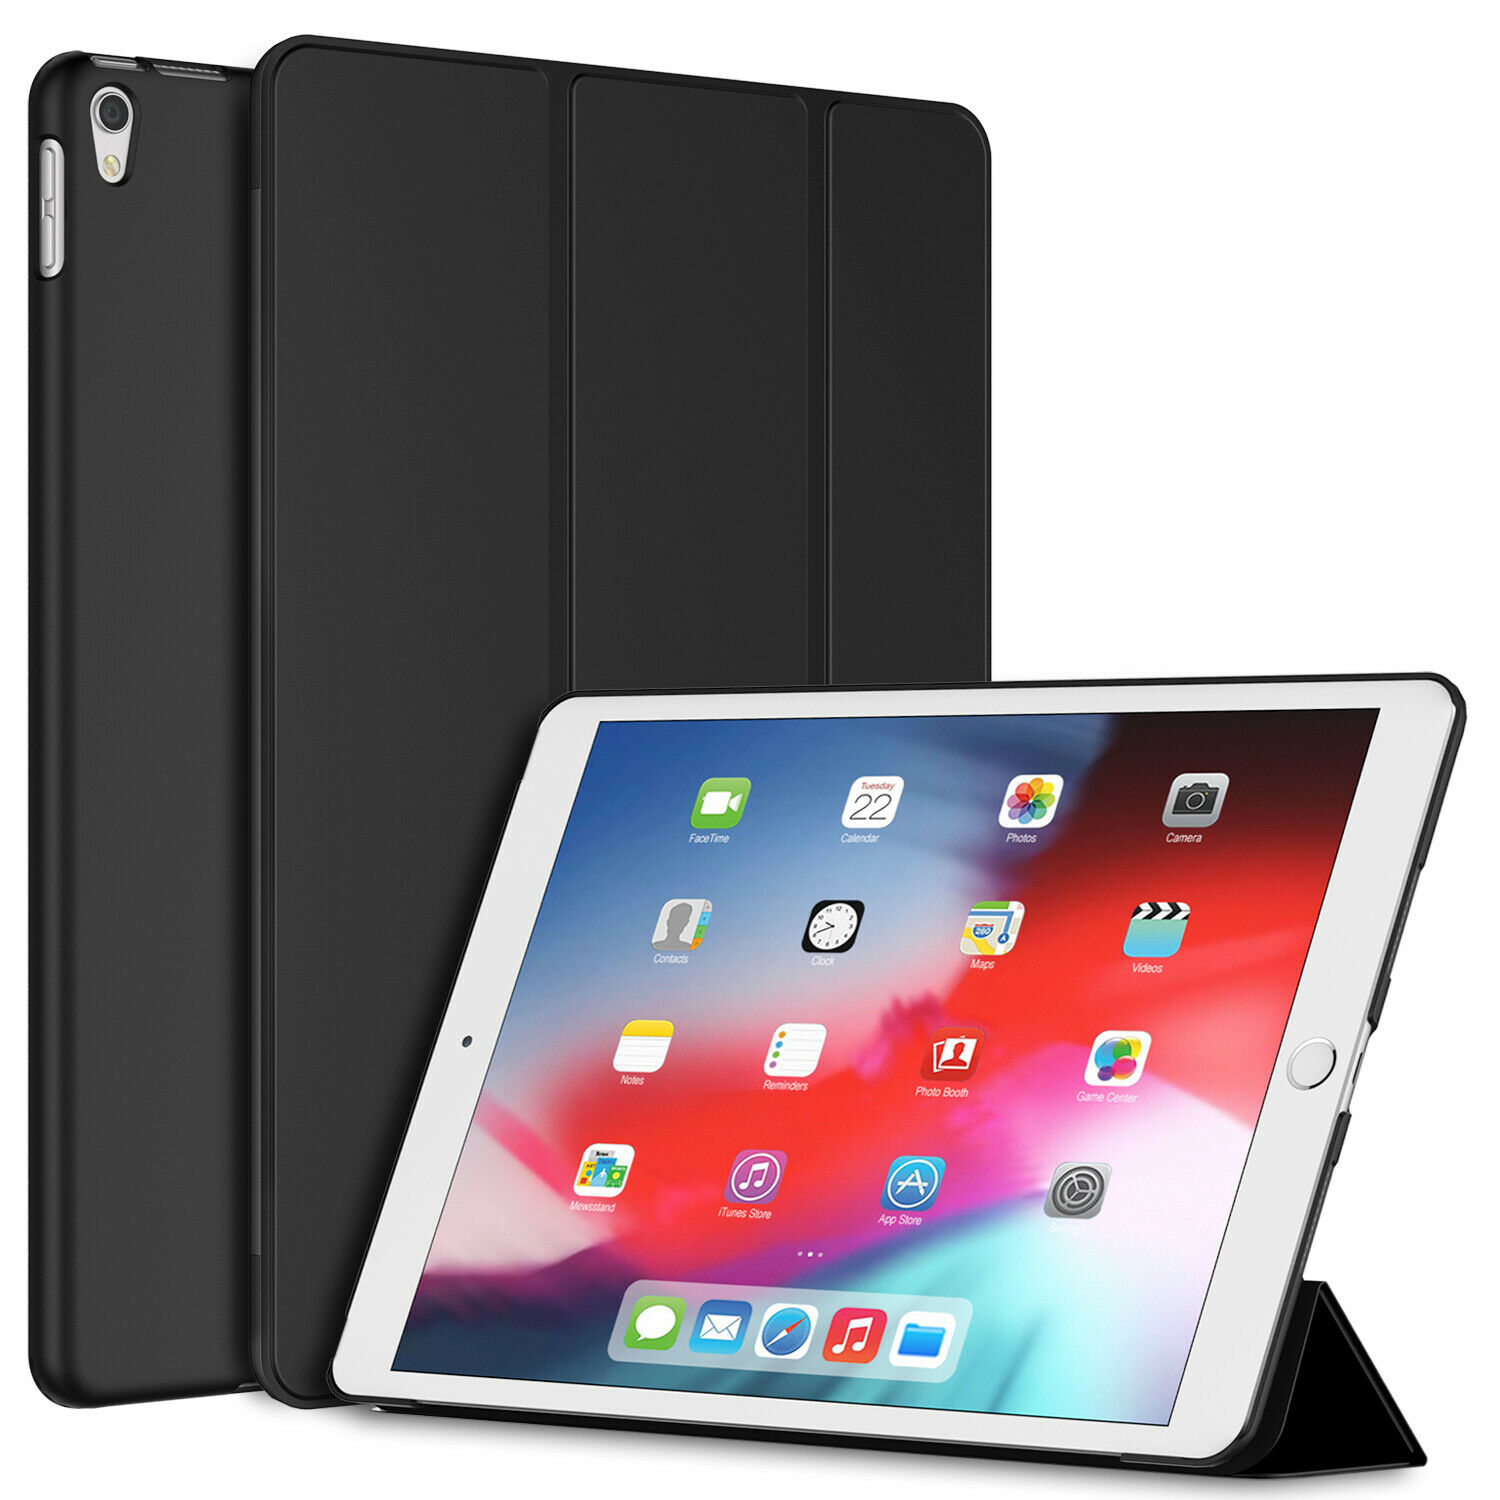 JETech Case for iPad Air 3 10.5 2019 / iPad Pro 10.5 2017 Au